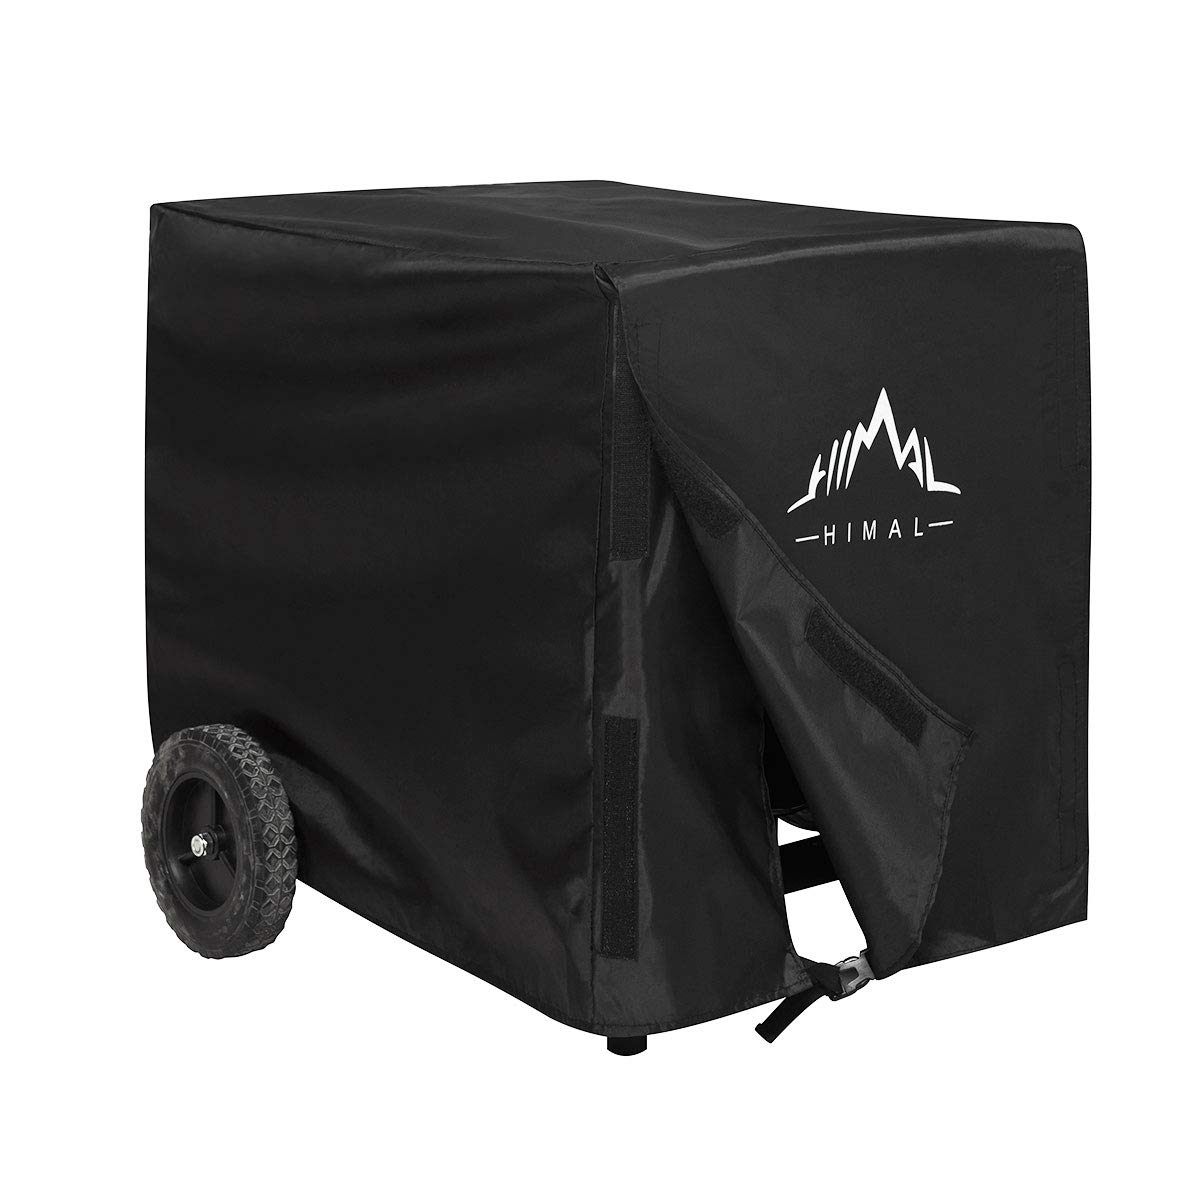 Himal Weather/UV Resistant Generator Cover 32 x 24 x 24 inch,for Universal Portable Generators 5000-10,000 Watt, Black by Himal Outdoors